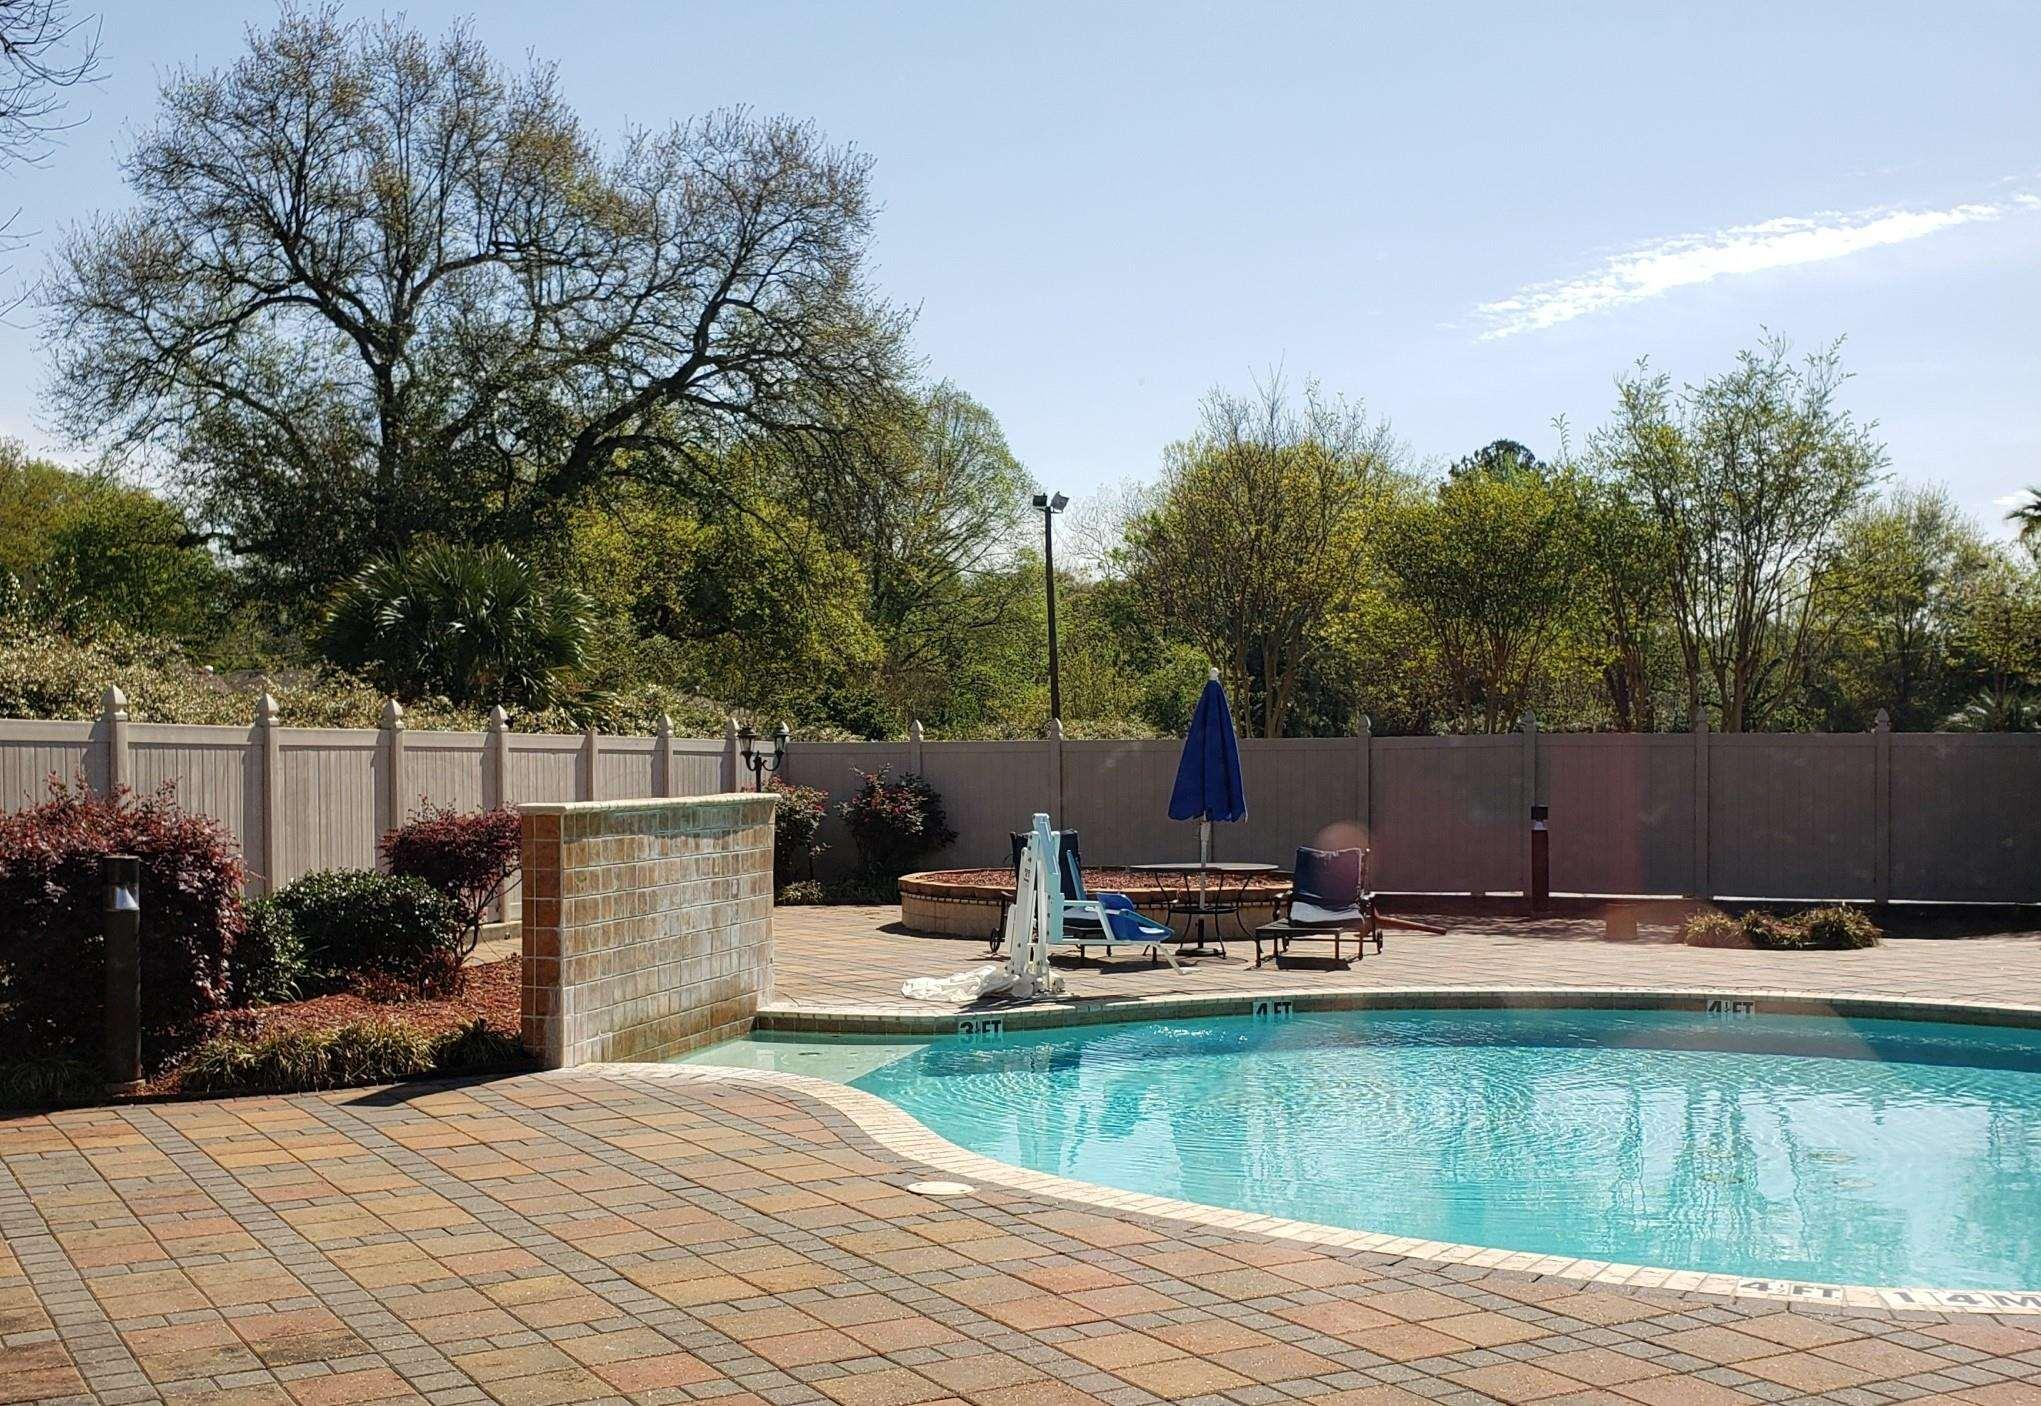 Red Roof Inn Baton Rouge – LSU Conference Center, East Baton Rouge